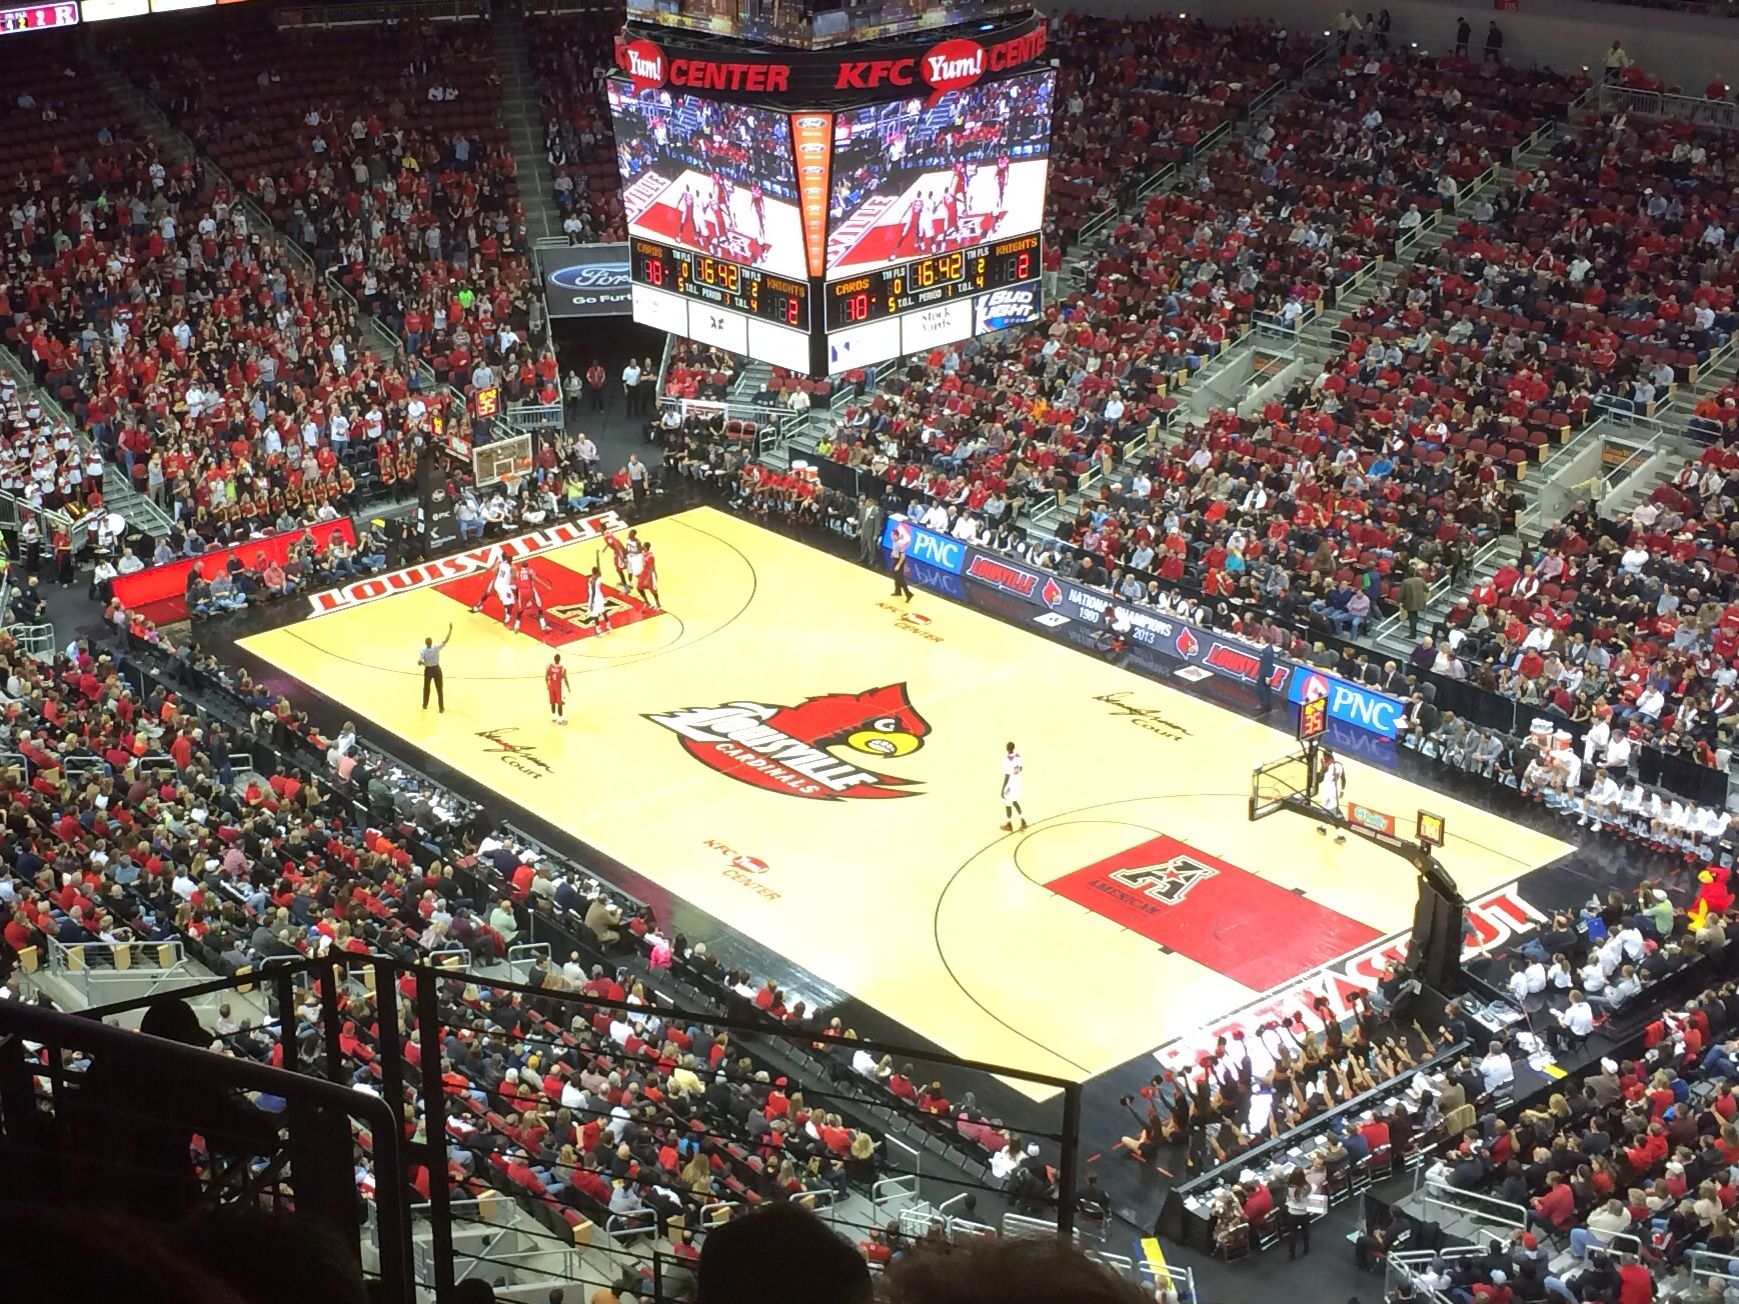 Pin By Ann Walker On Places I Have Been University Of Louisville Basketball Louisville Basketball University Of Louisville